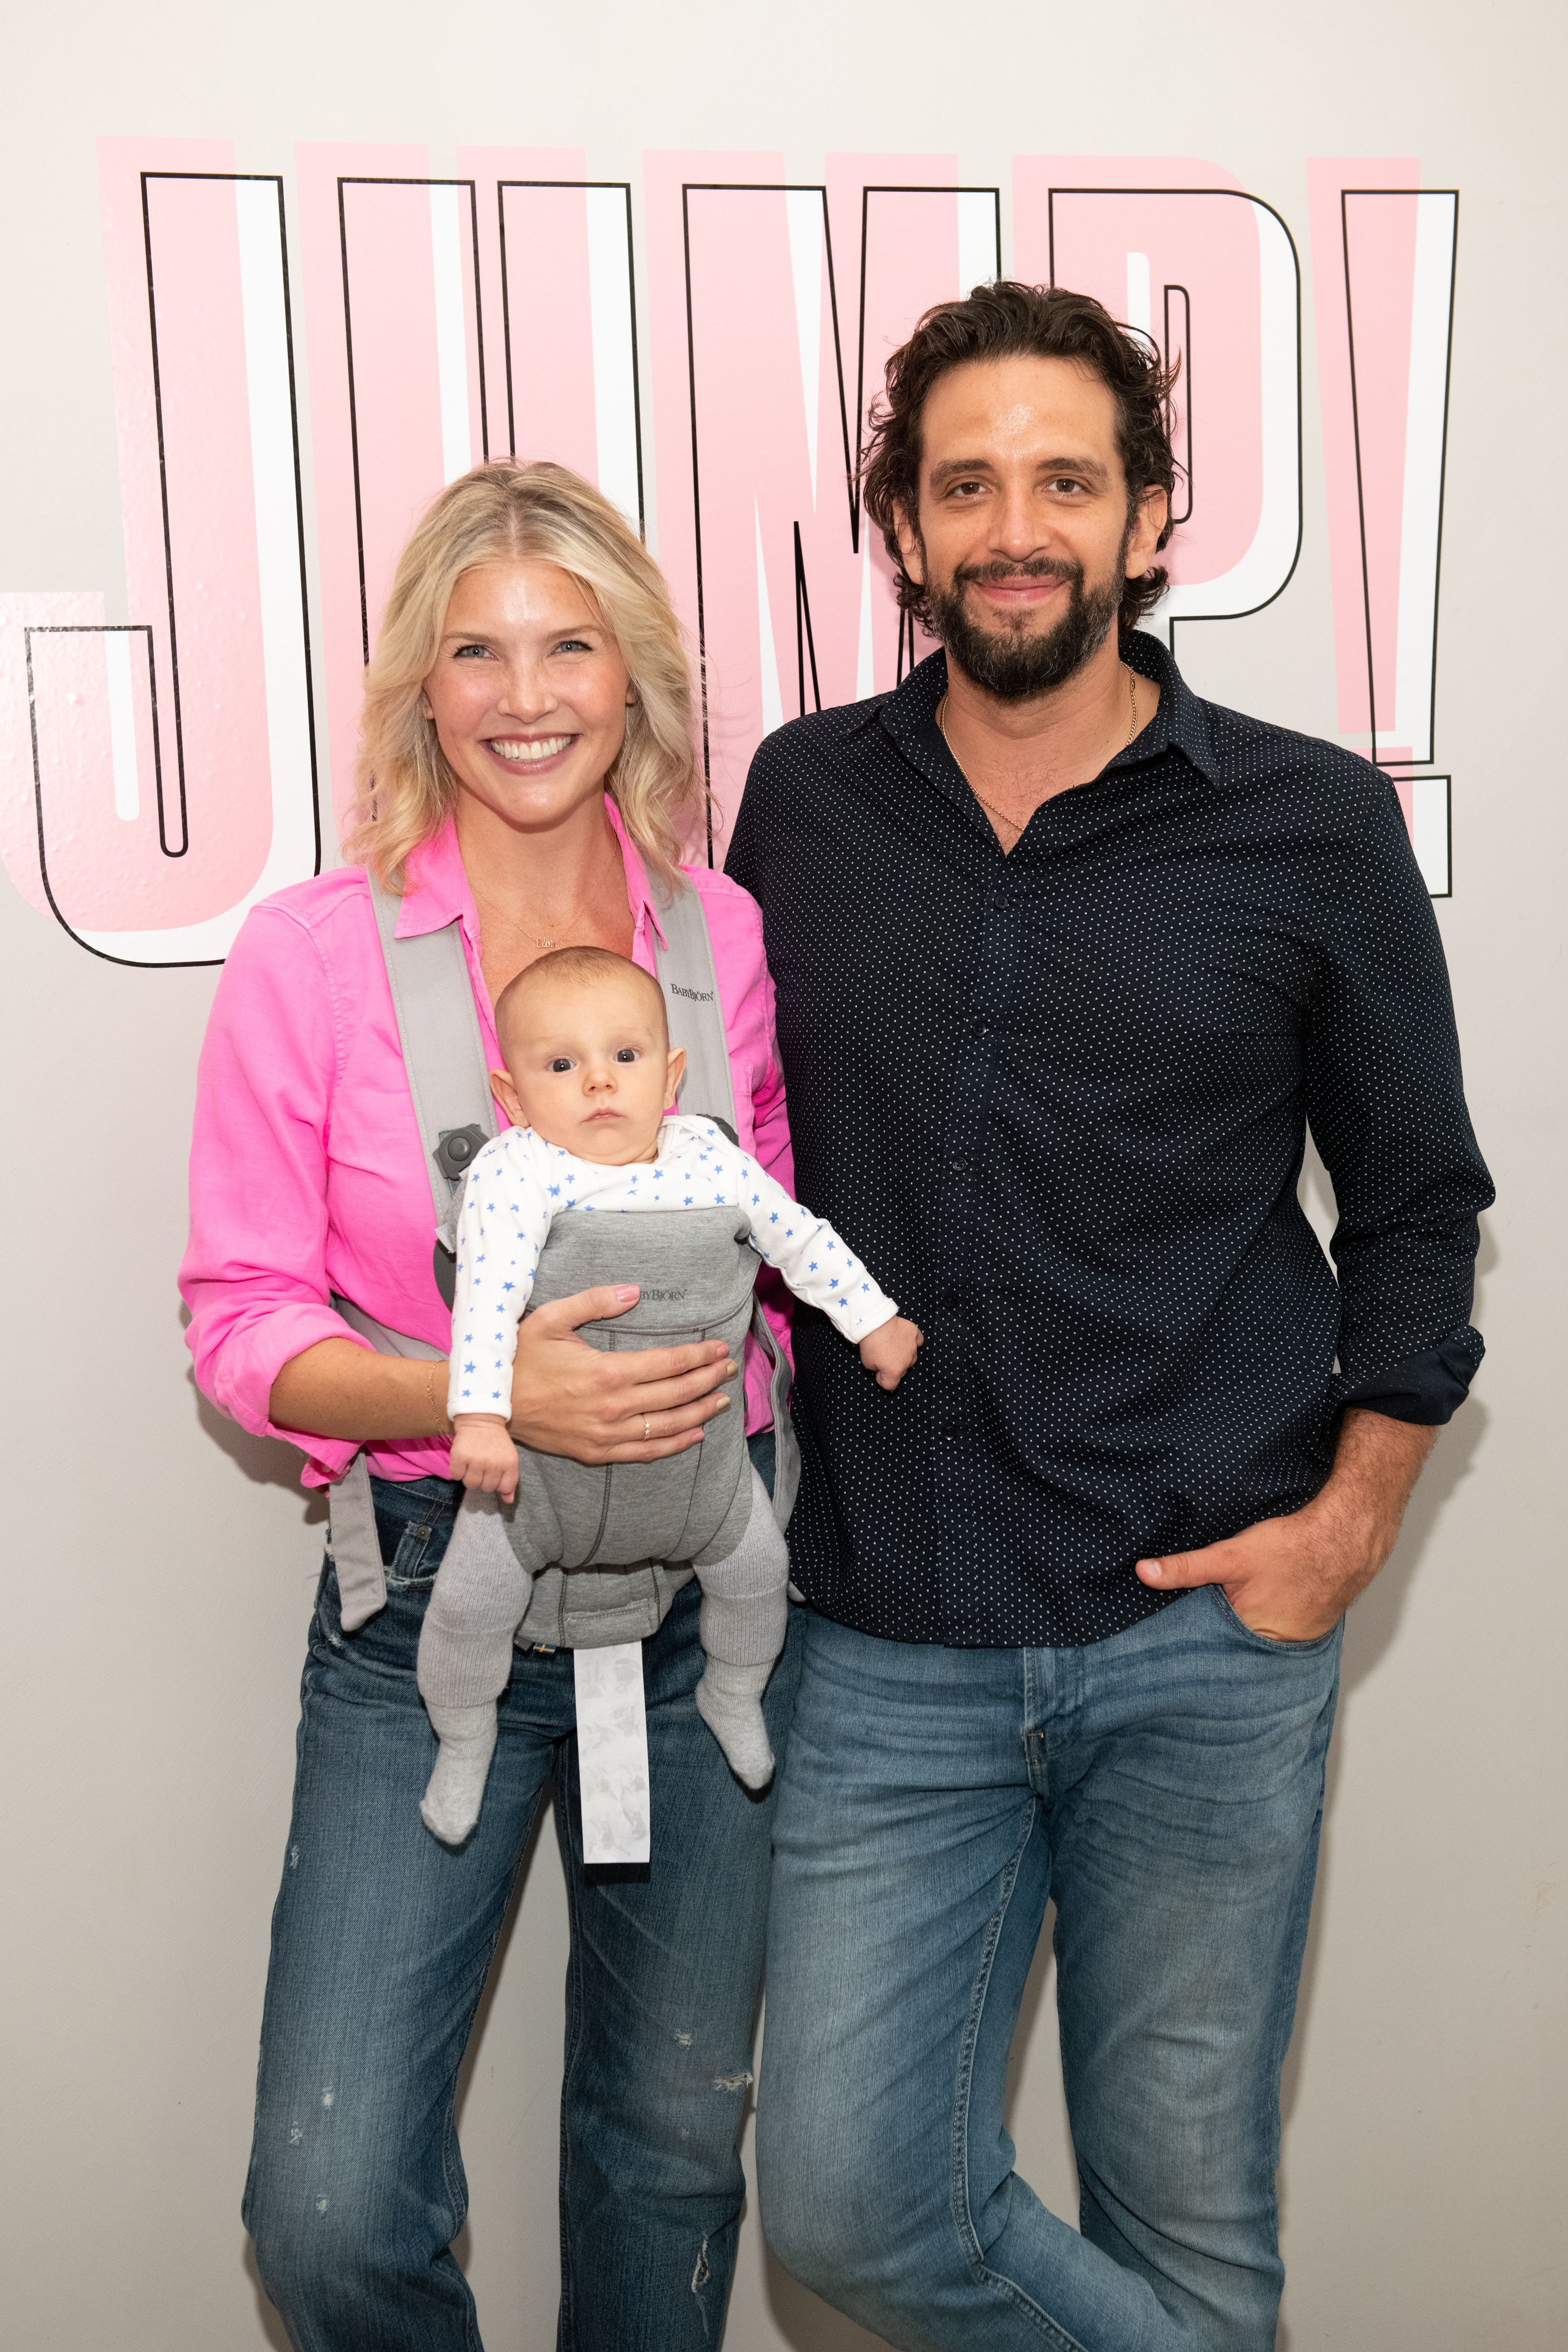 Amanda Kloots, Nick Cordero, and their son at the Beyond Yoga x Amanda Kloots Collaboration Launch Event on August 27, 2019, in New York City | Photo: Noam Galai/Getty Images